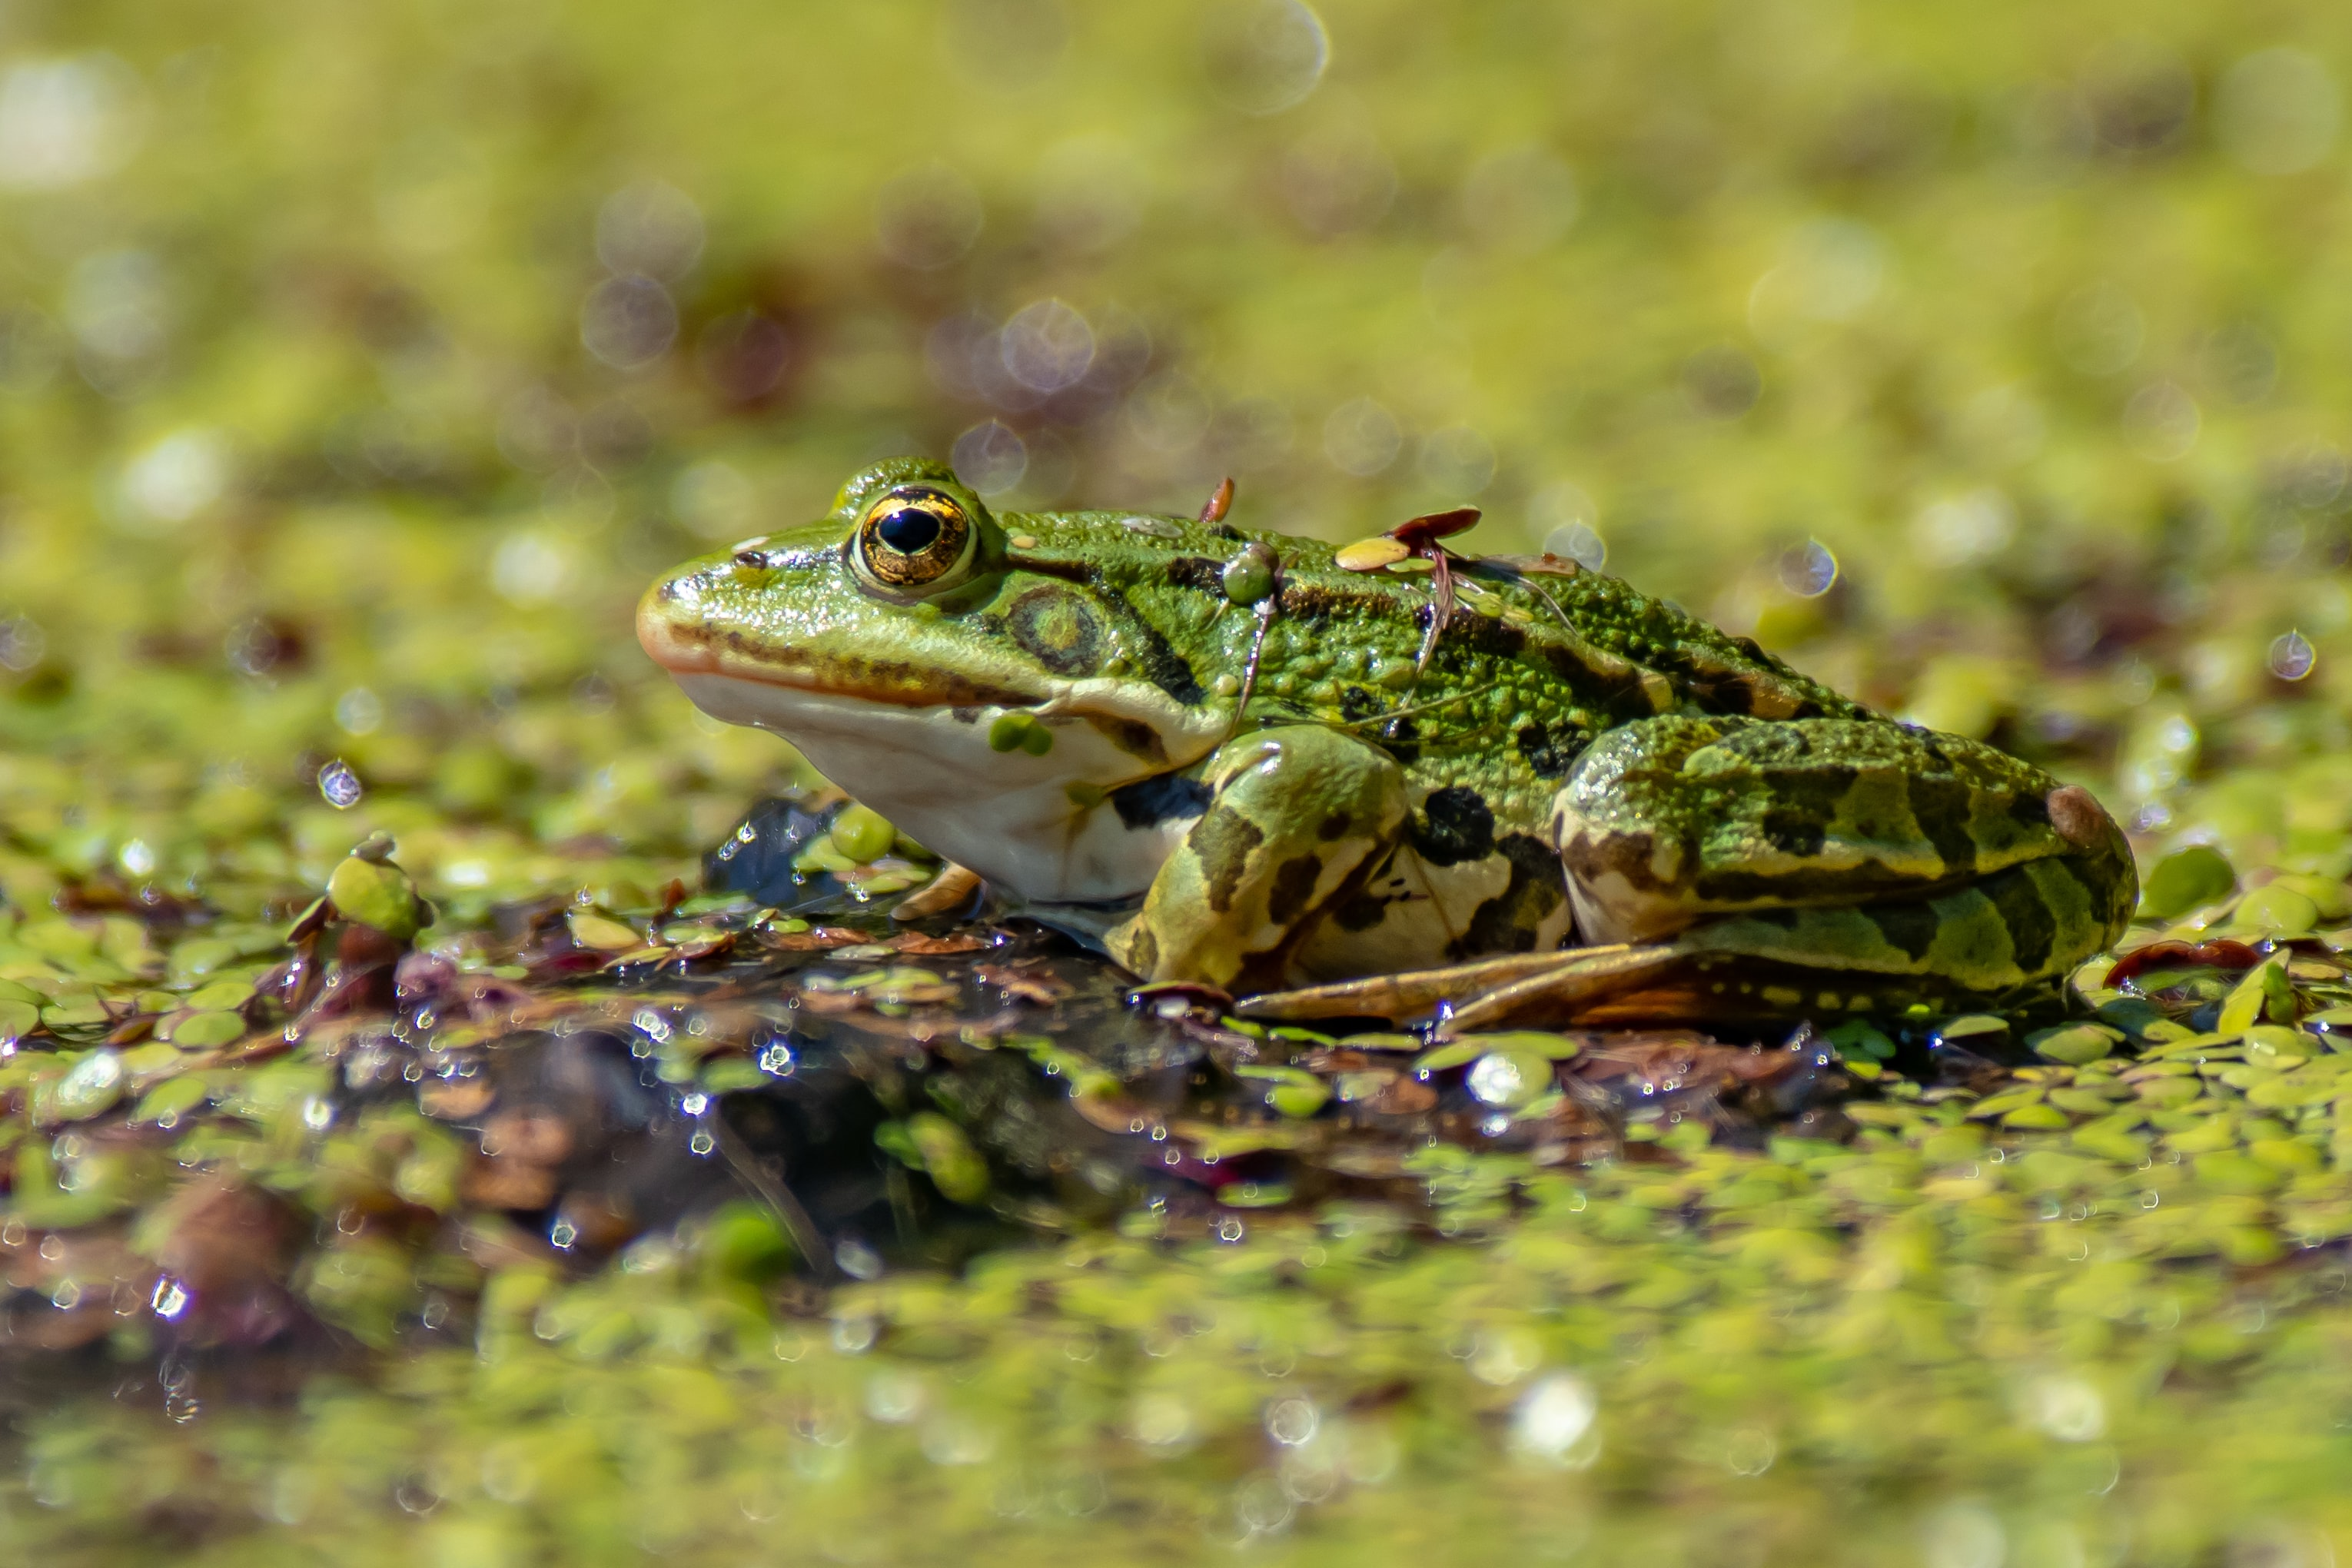 green and yellow toad on brown surface